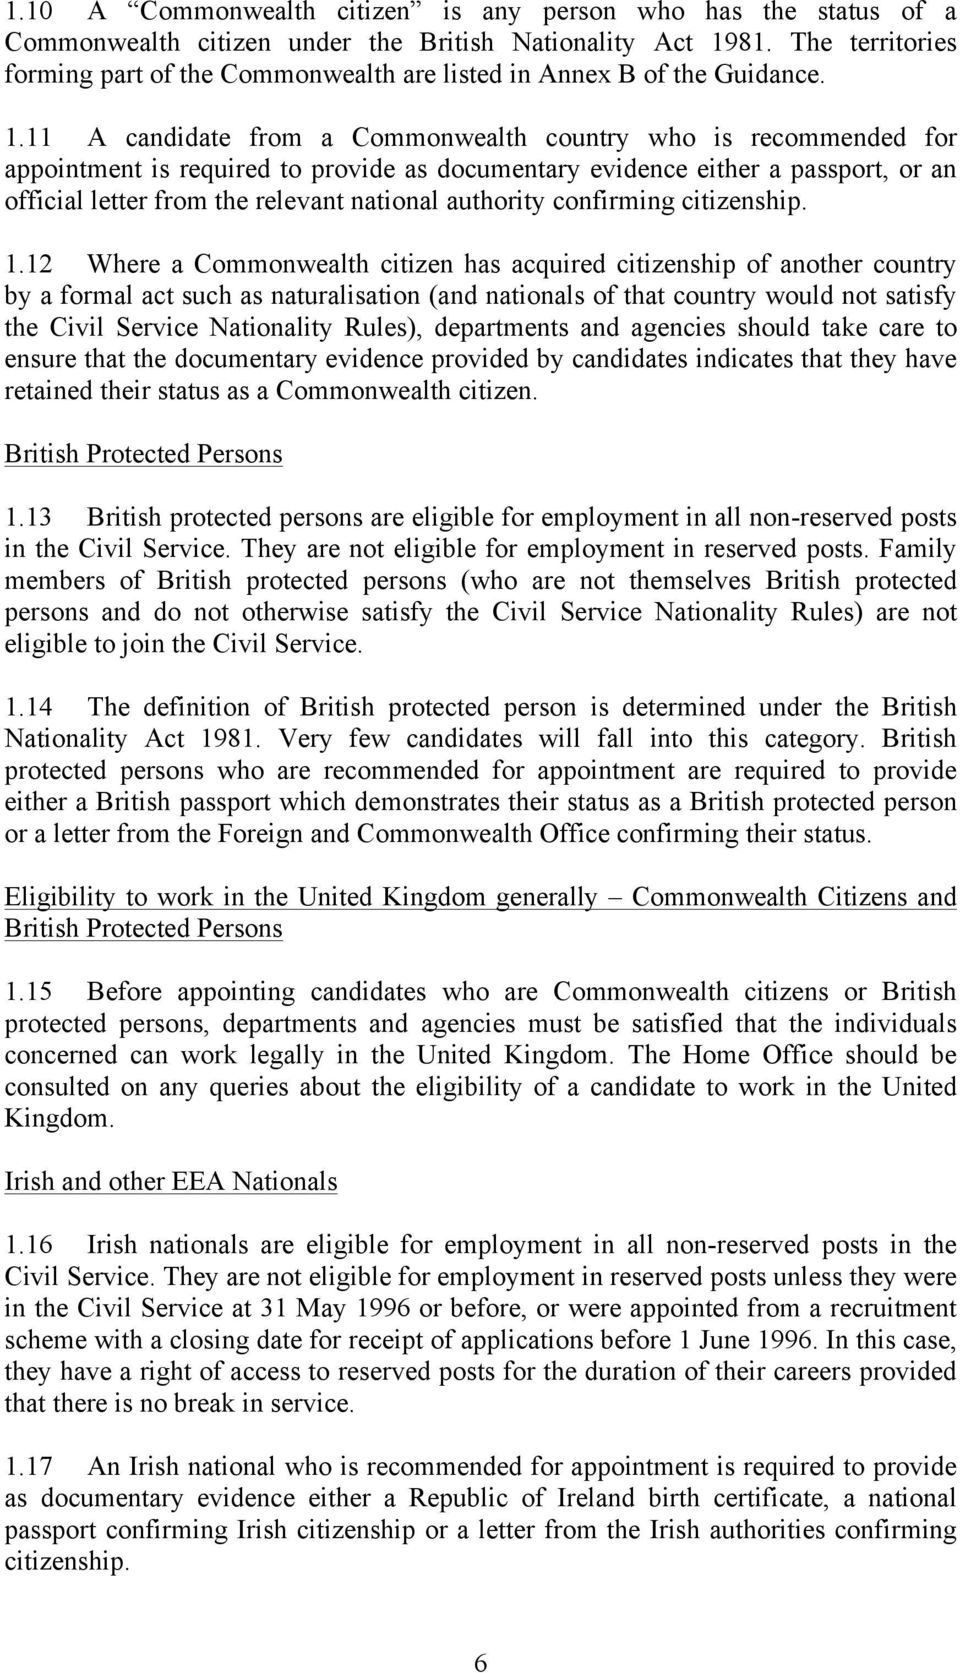 11 A candidate from a Commonwealth country who is recommended for appointment is required to provide as documentary evidence either a passport, or an official letter from the relevant national